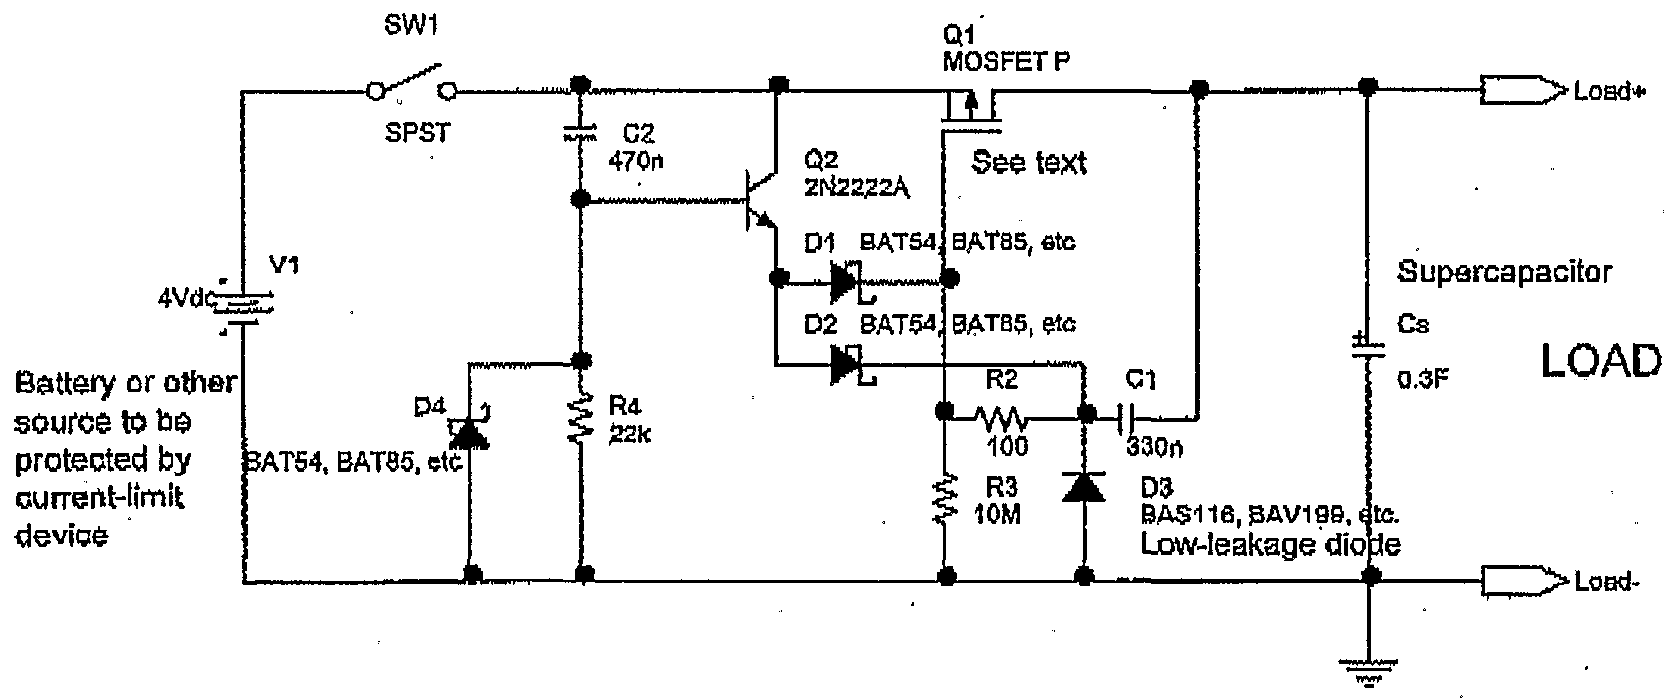 Current Limiting Circuit Mos Fet Mosfet Design Patent Wo2004023637a1 A Power Supply Google Patents